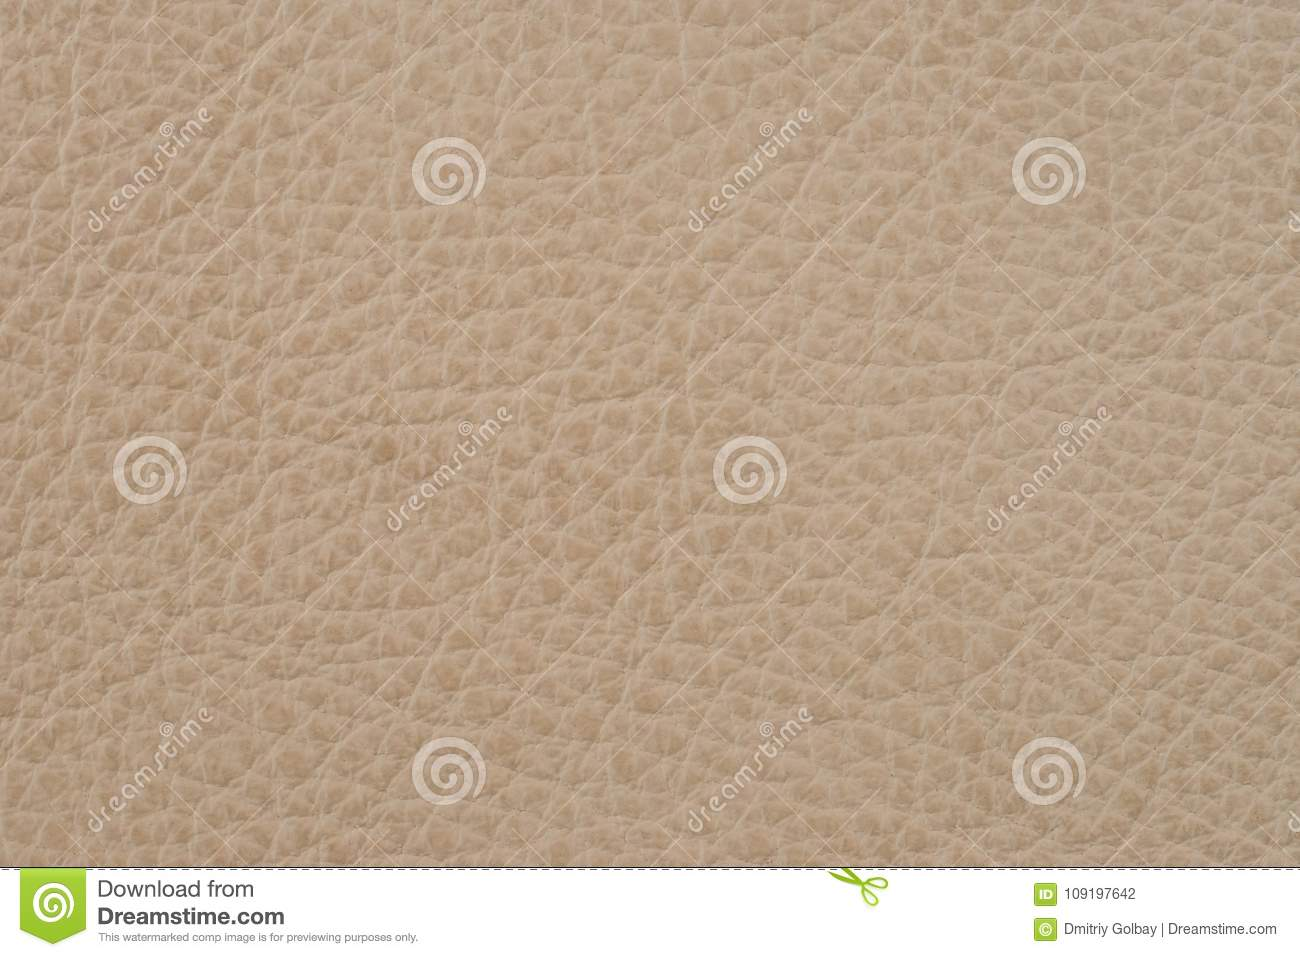 Close Up Photo Of Brown Surface: Light Brown Leather Texture Surface. Close-up Of Natural